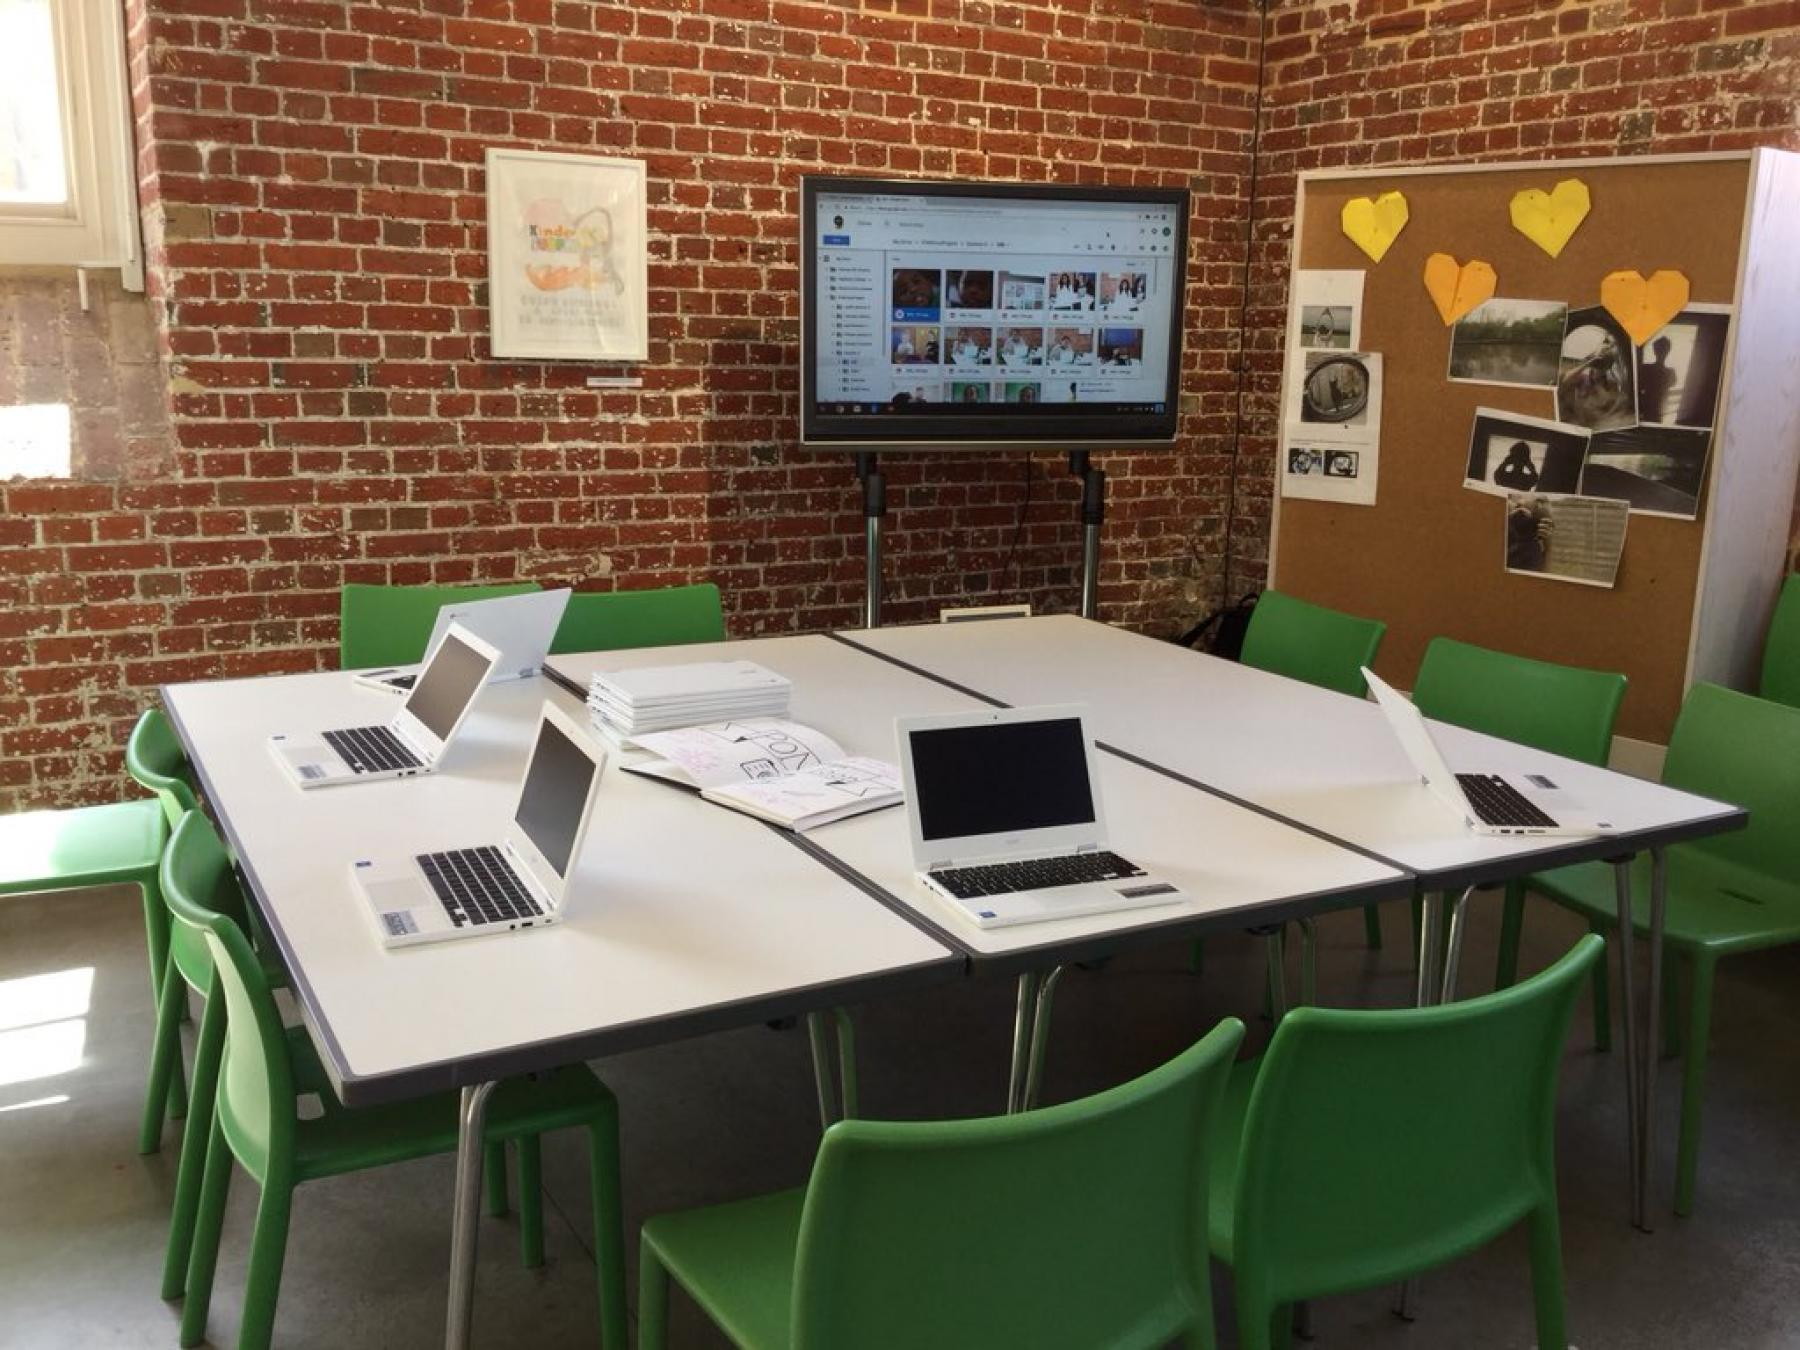 Aspex Gallery Participation and Learning week 5 set-up